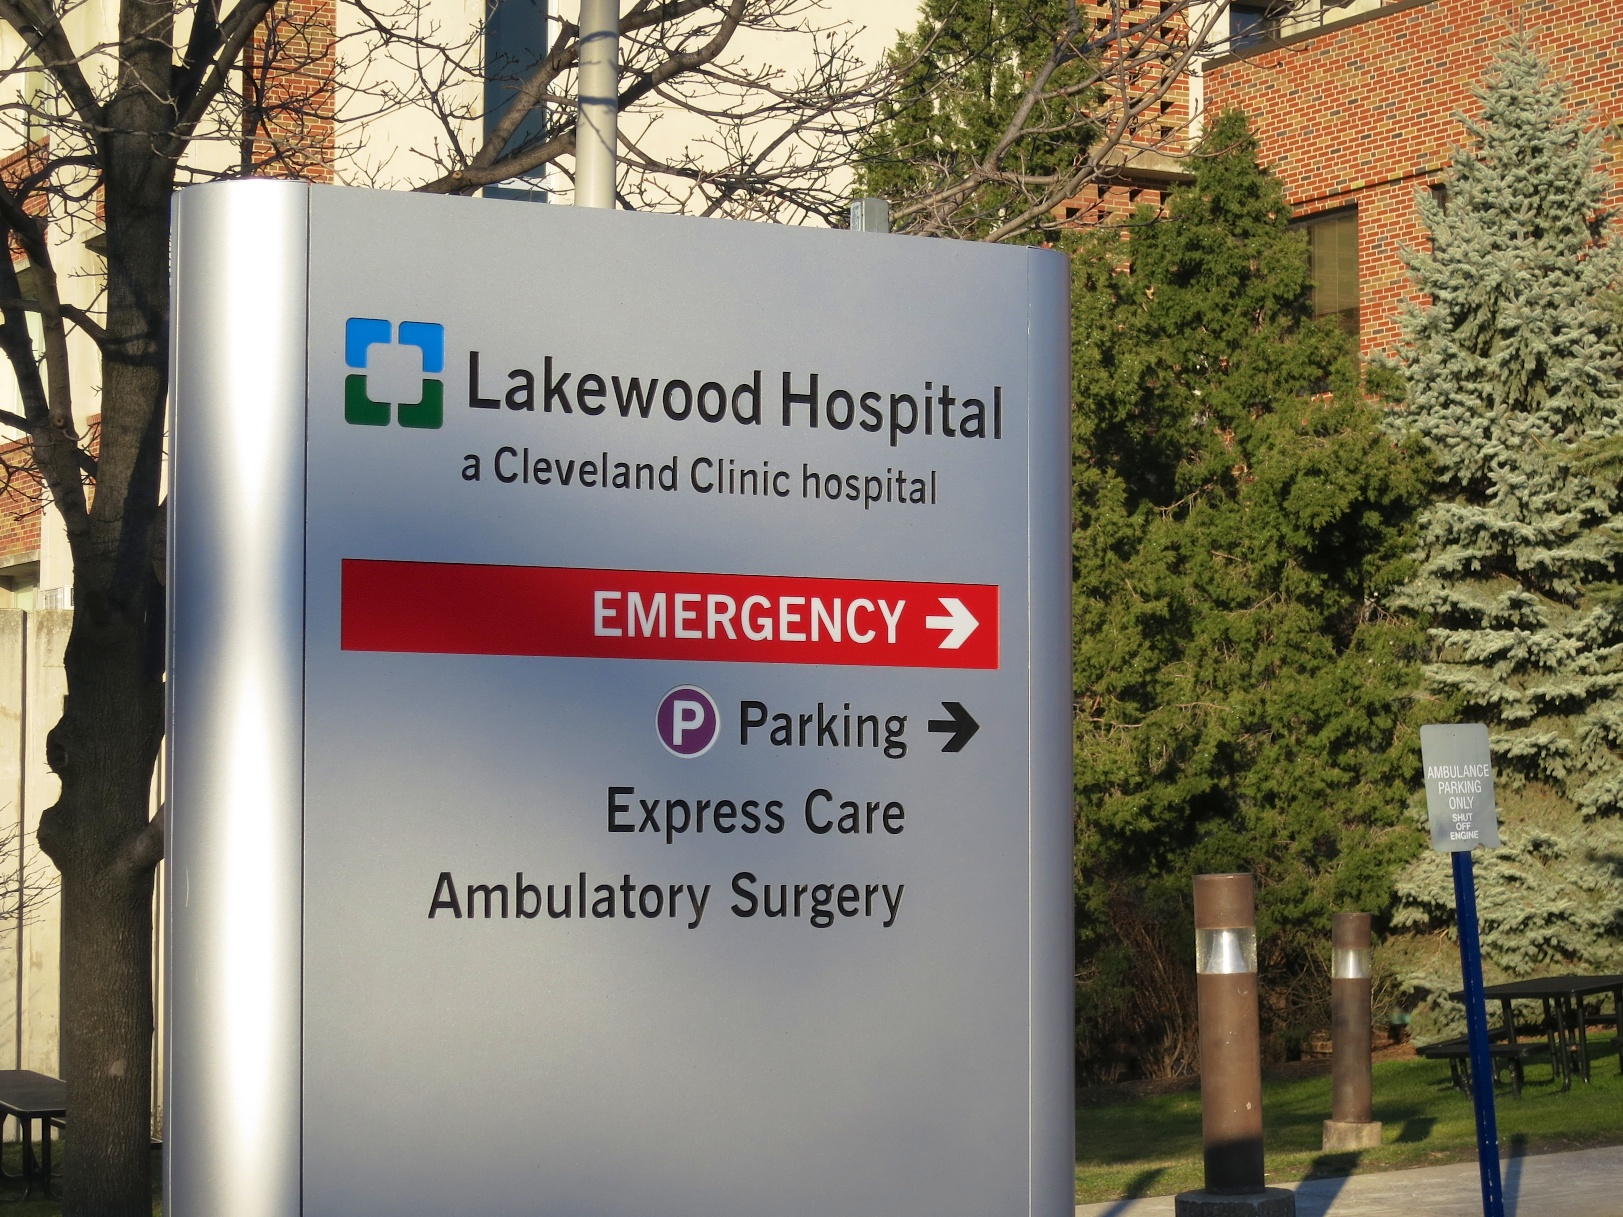 Lakewood Hospital - Lakewood, Ohio